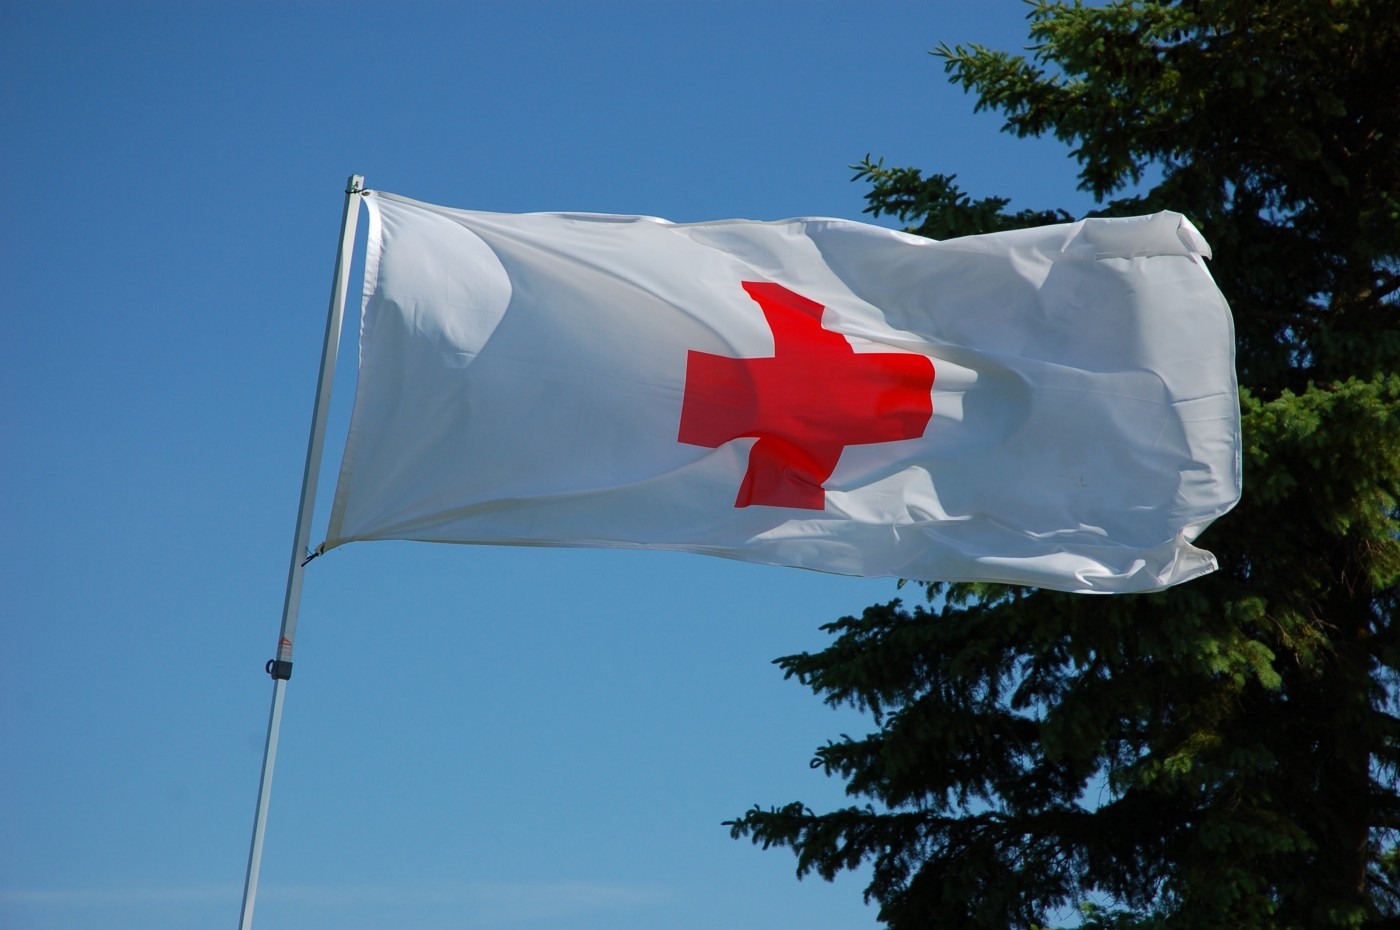 The Red Cross flag